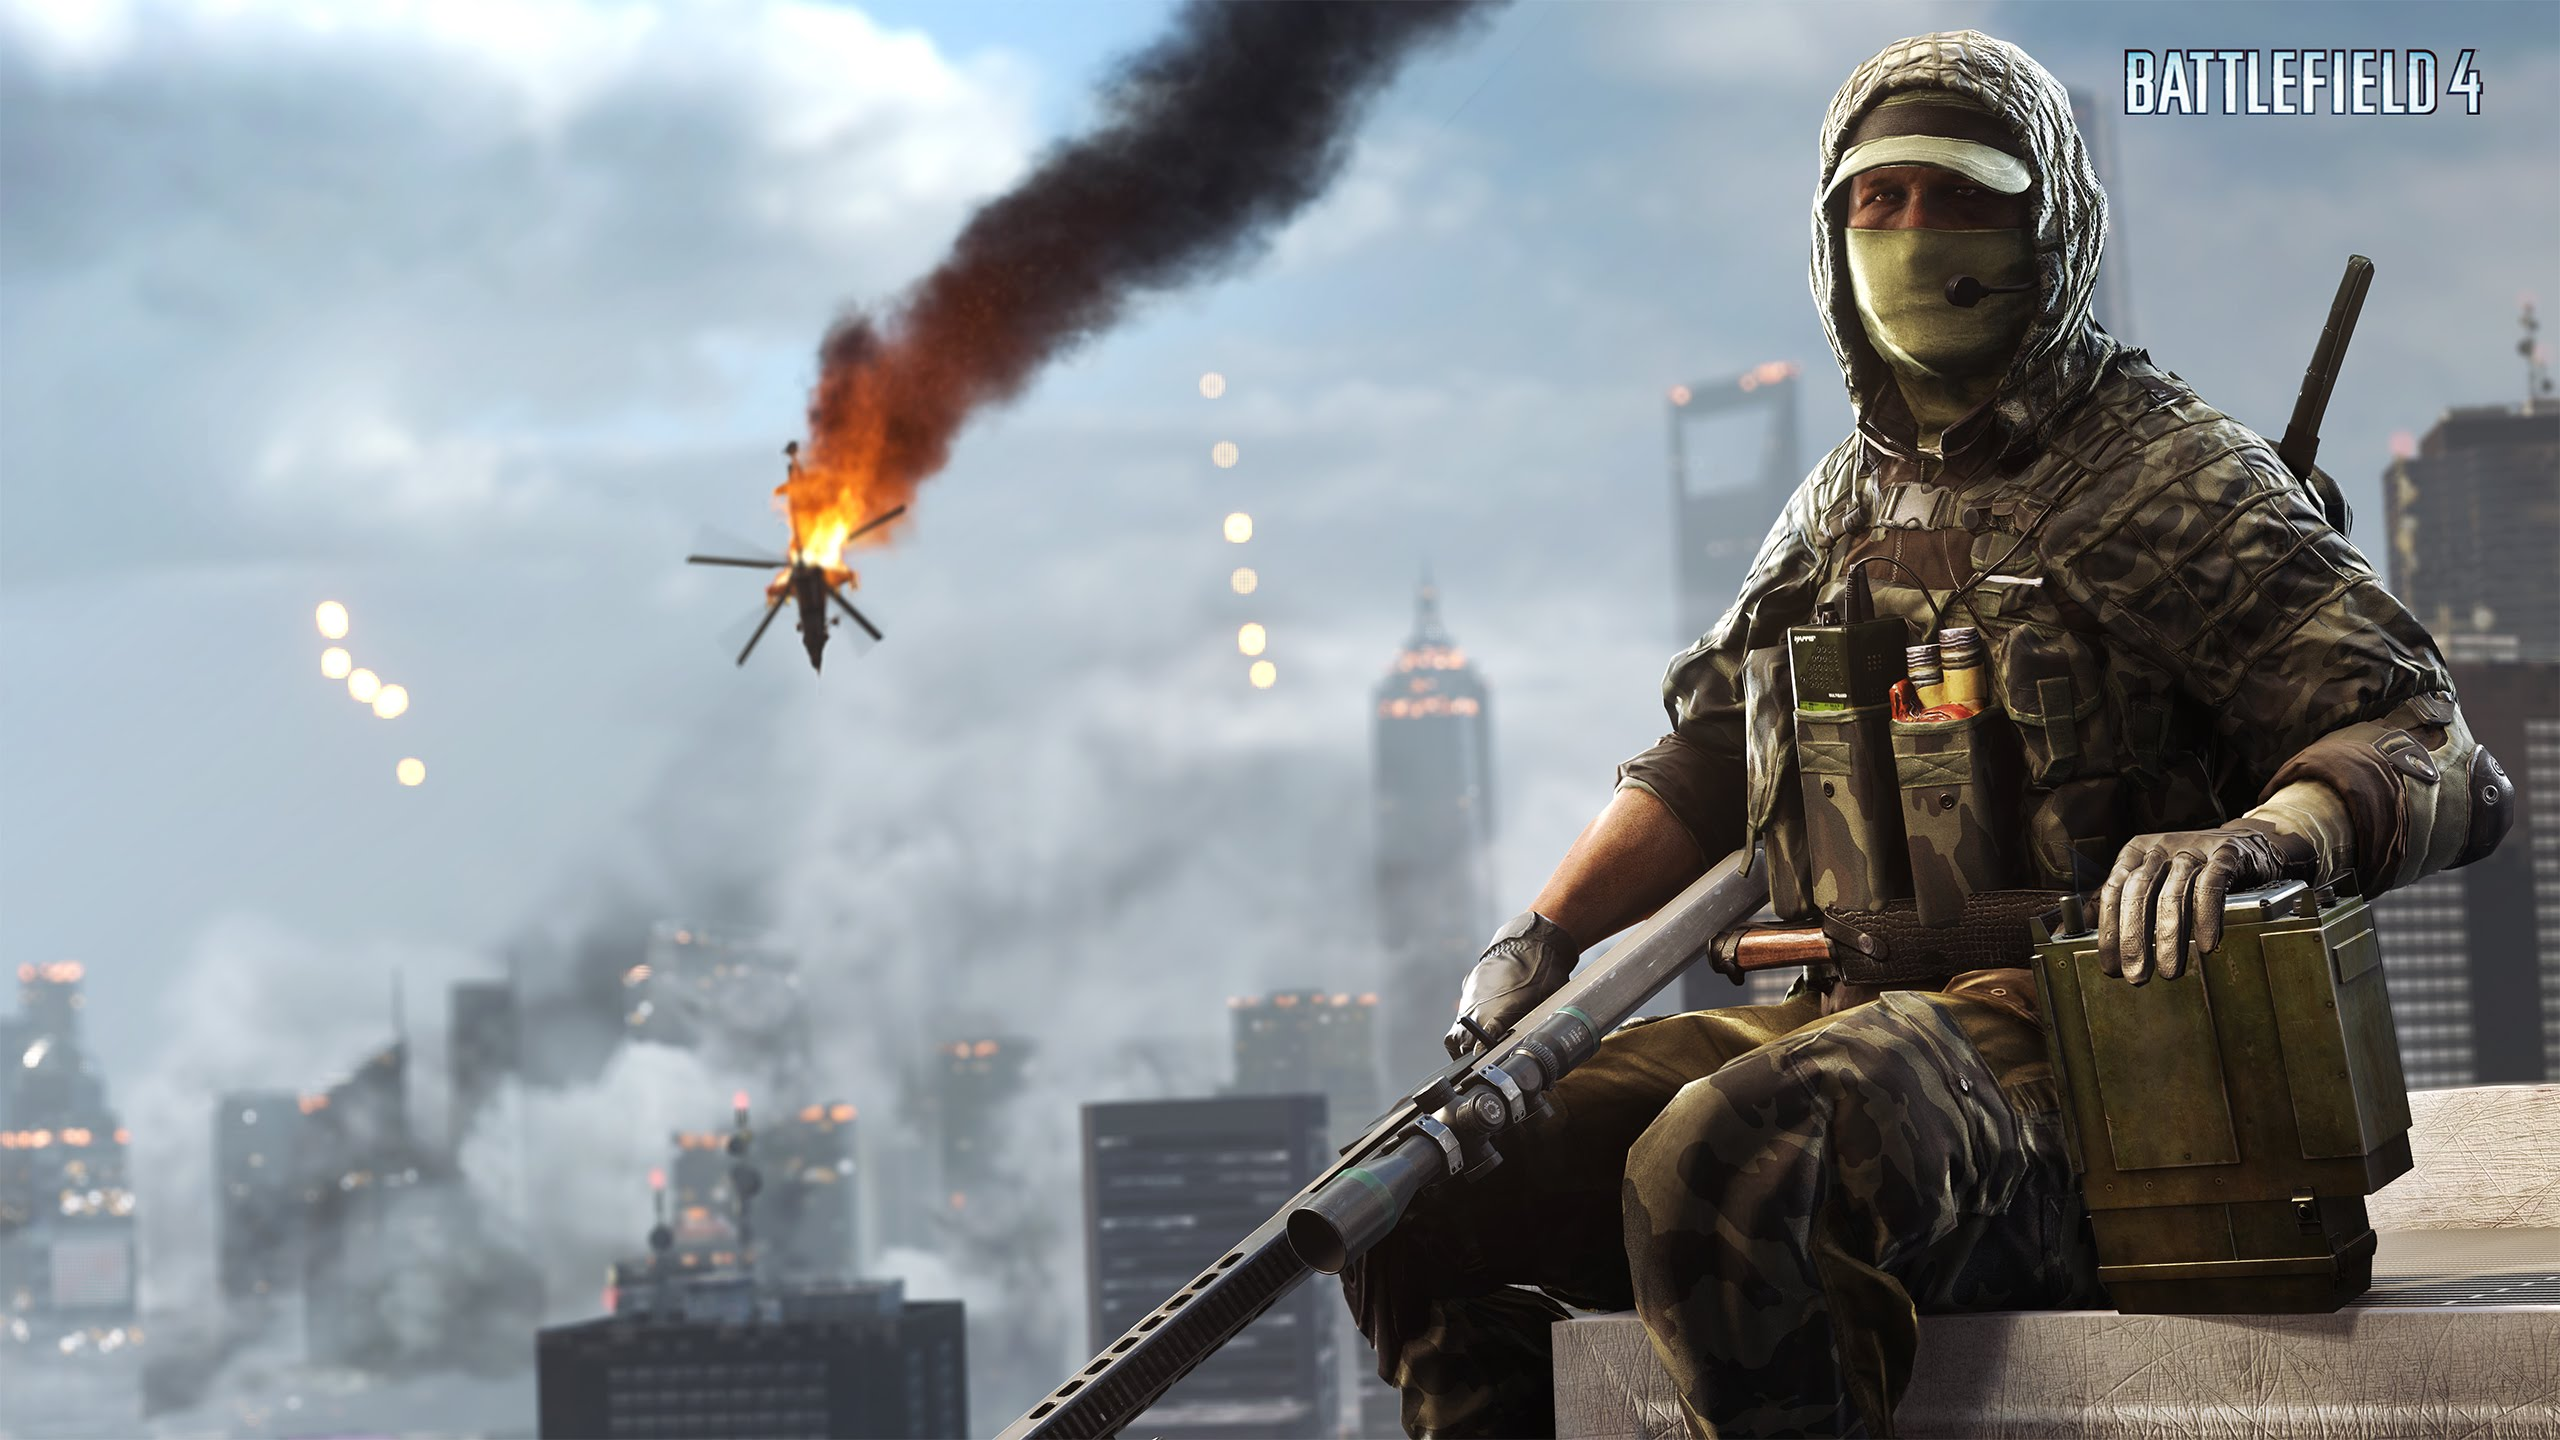 Battlefield 4: ALL EXPANSIONS ARE NOW FREE ON XBOX ONE AND XBOX 360.